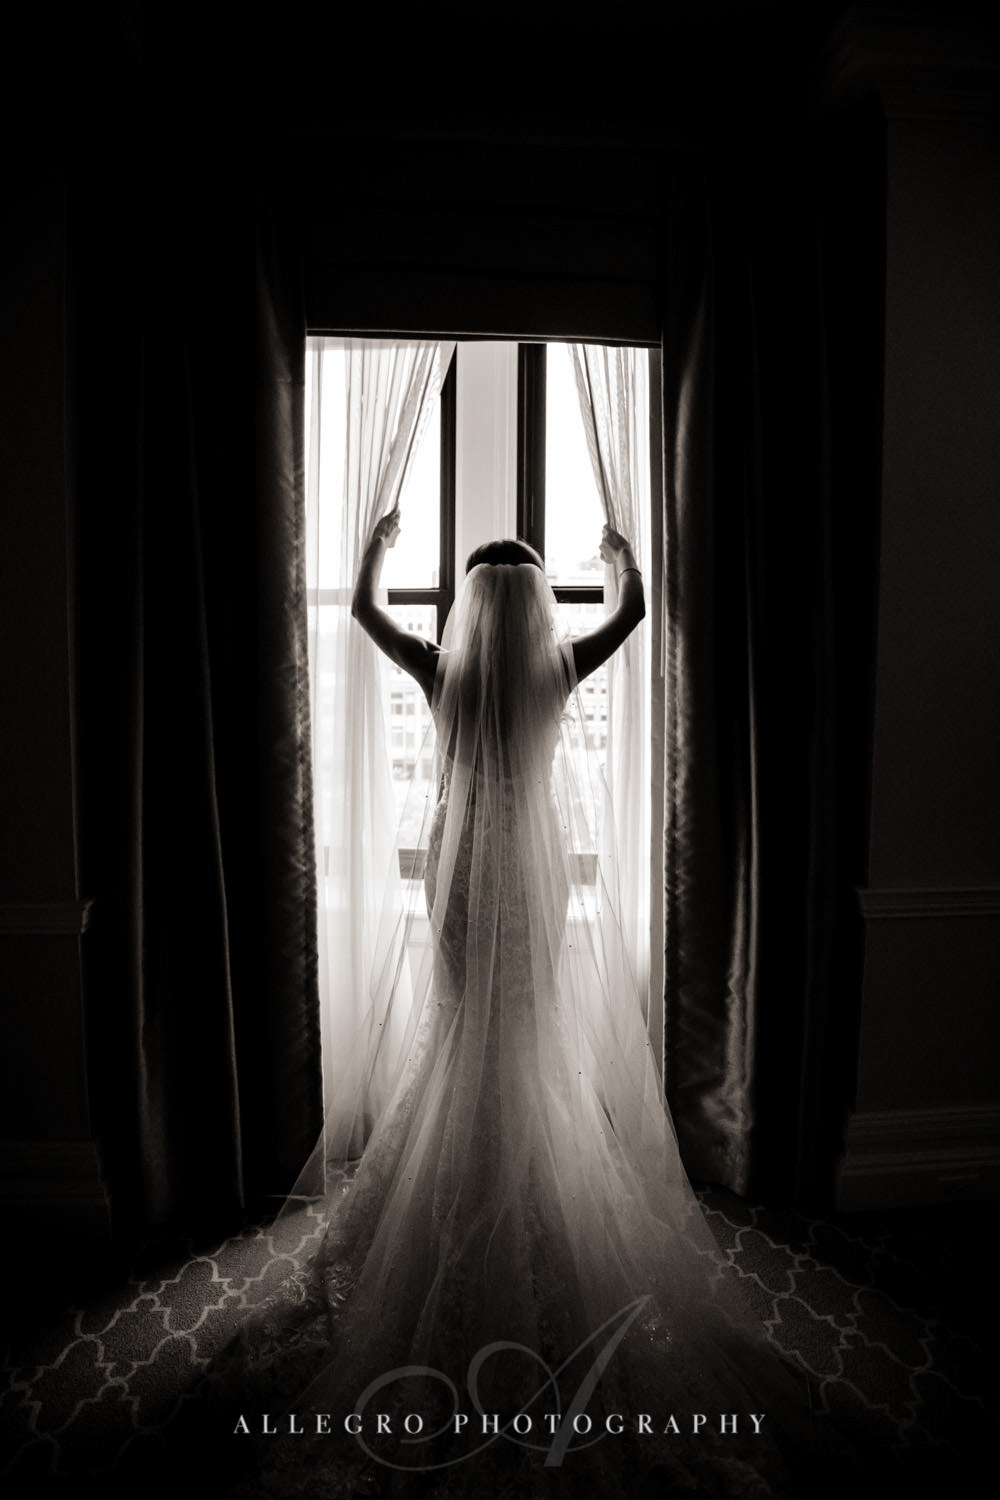 bride opens curtains while wearing wedding dress